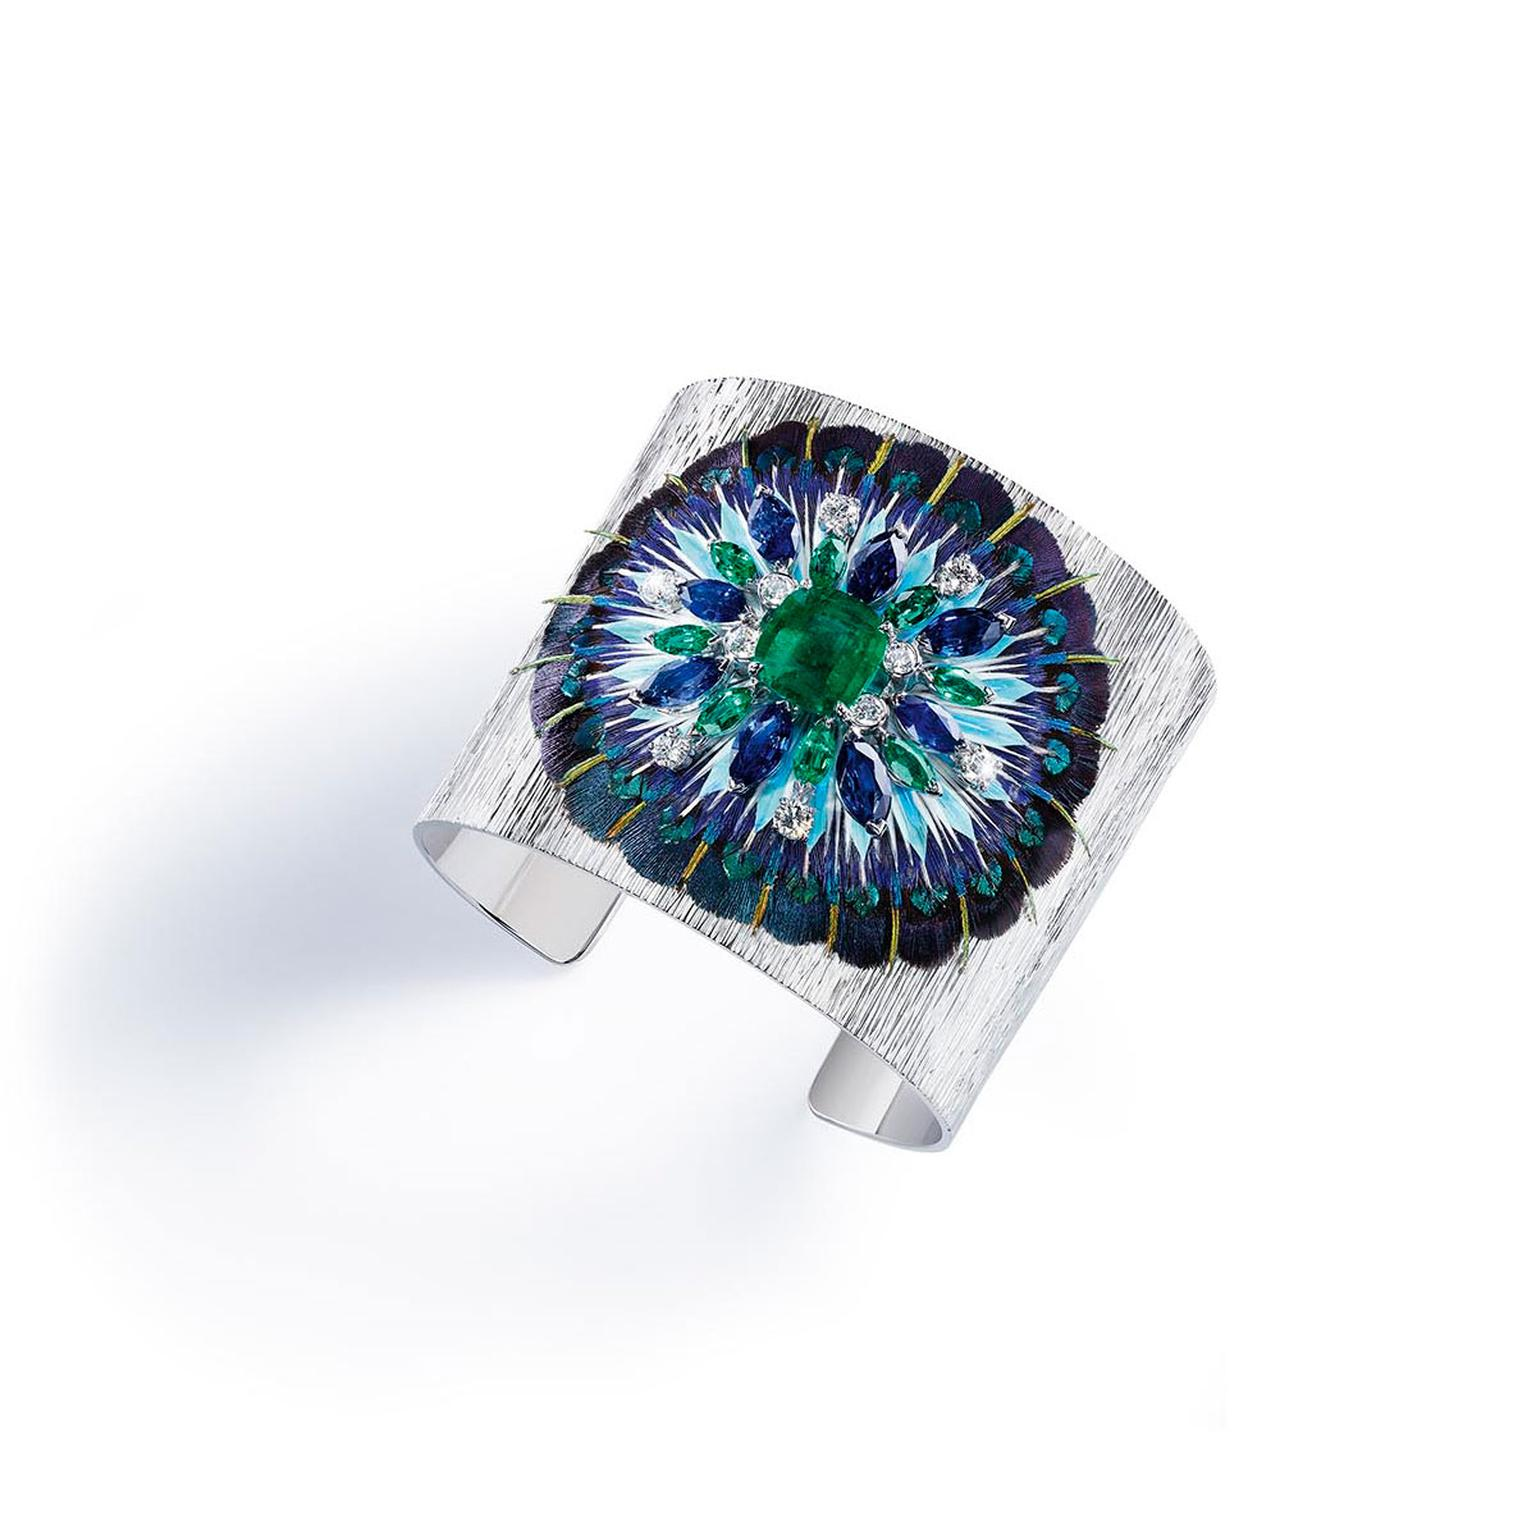 Piaget Peacock jewel